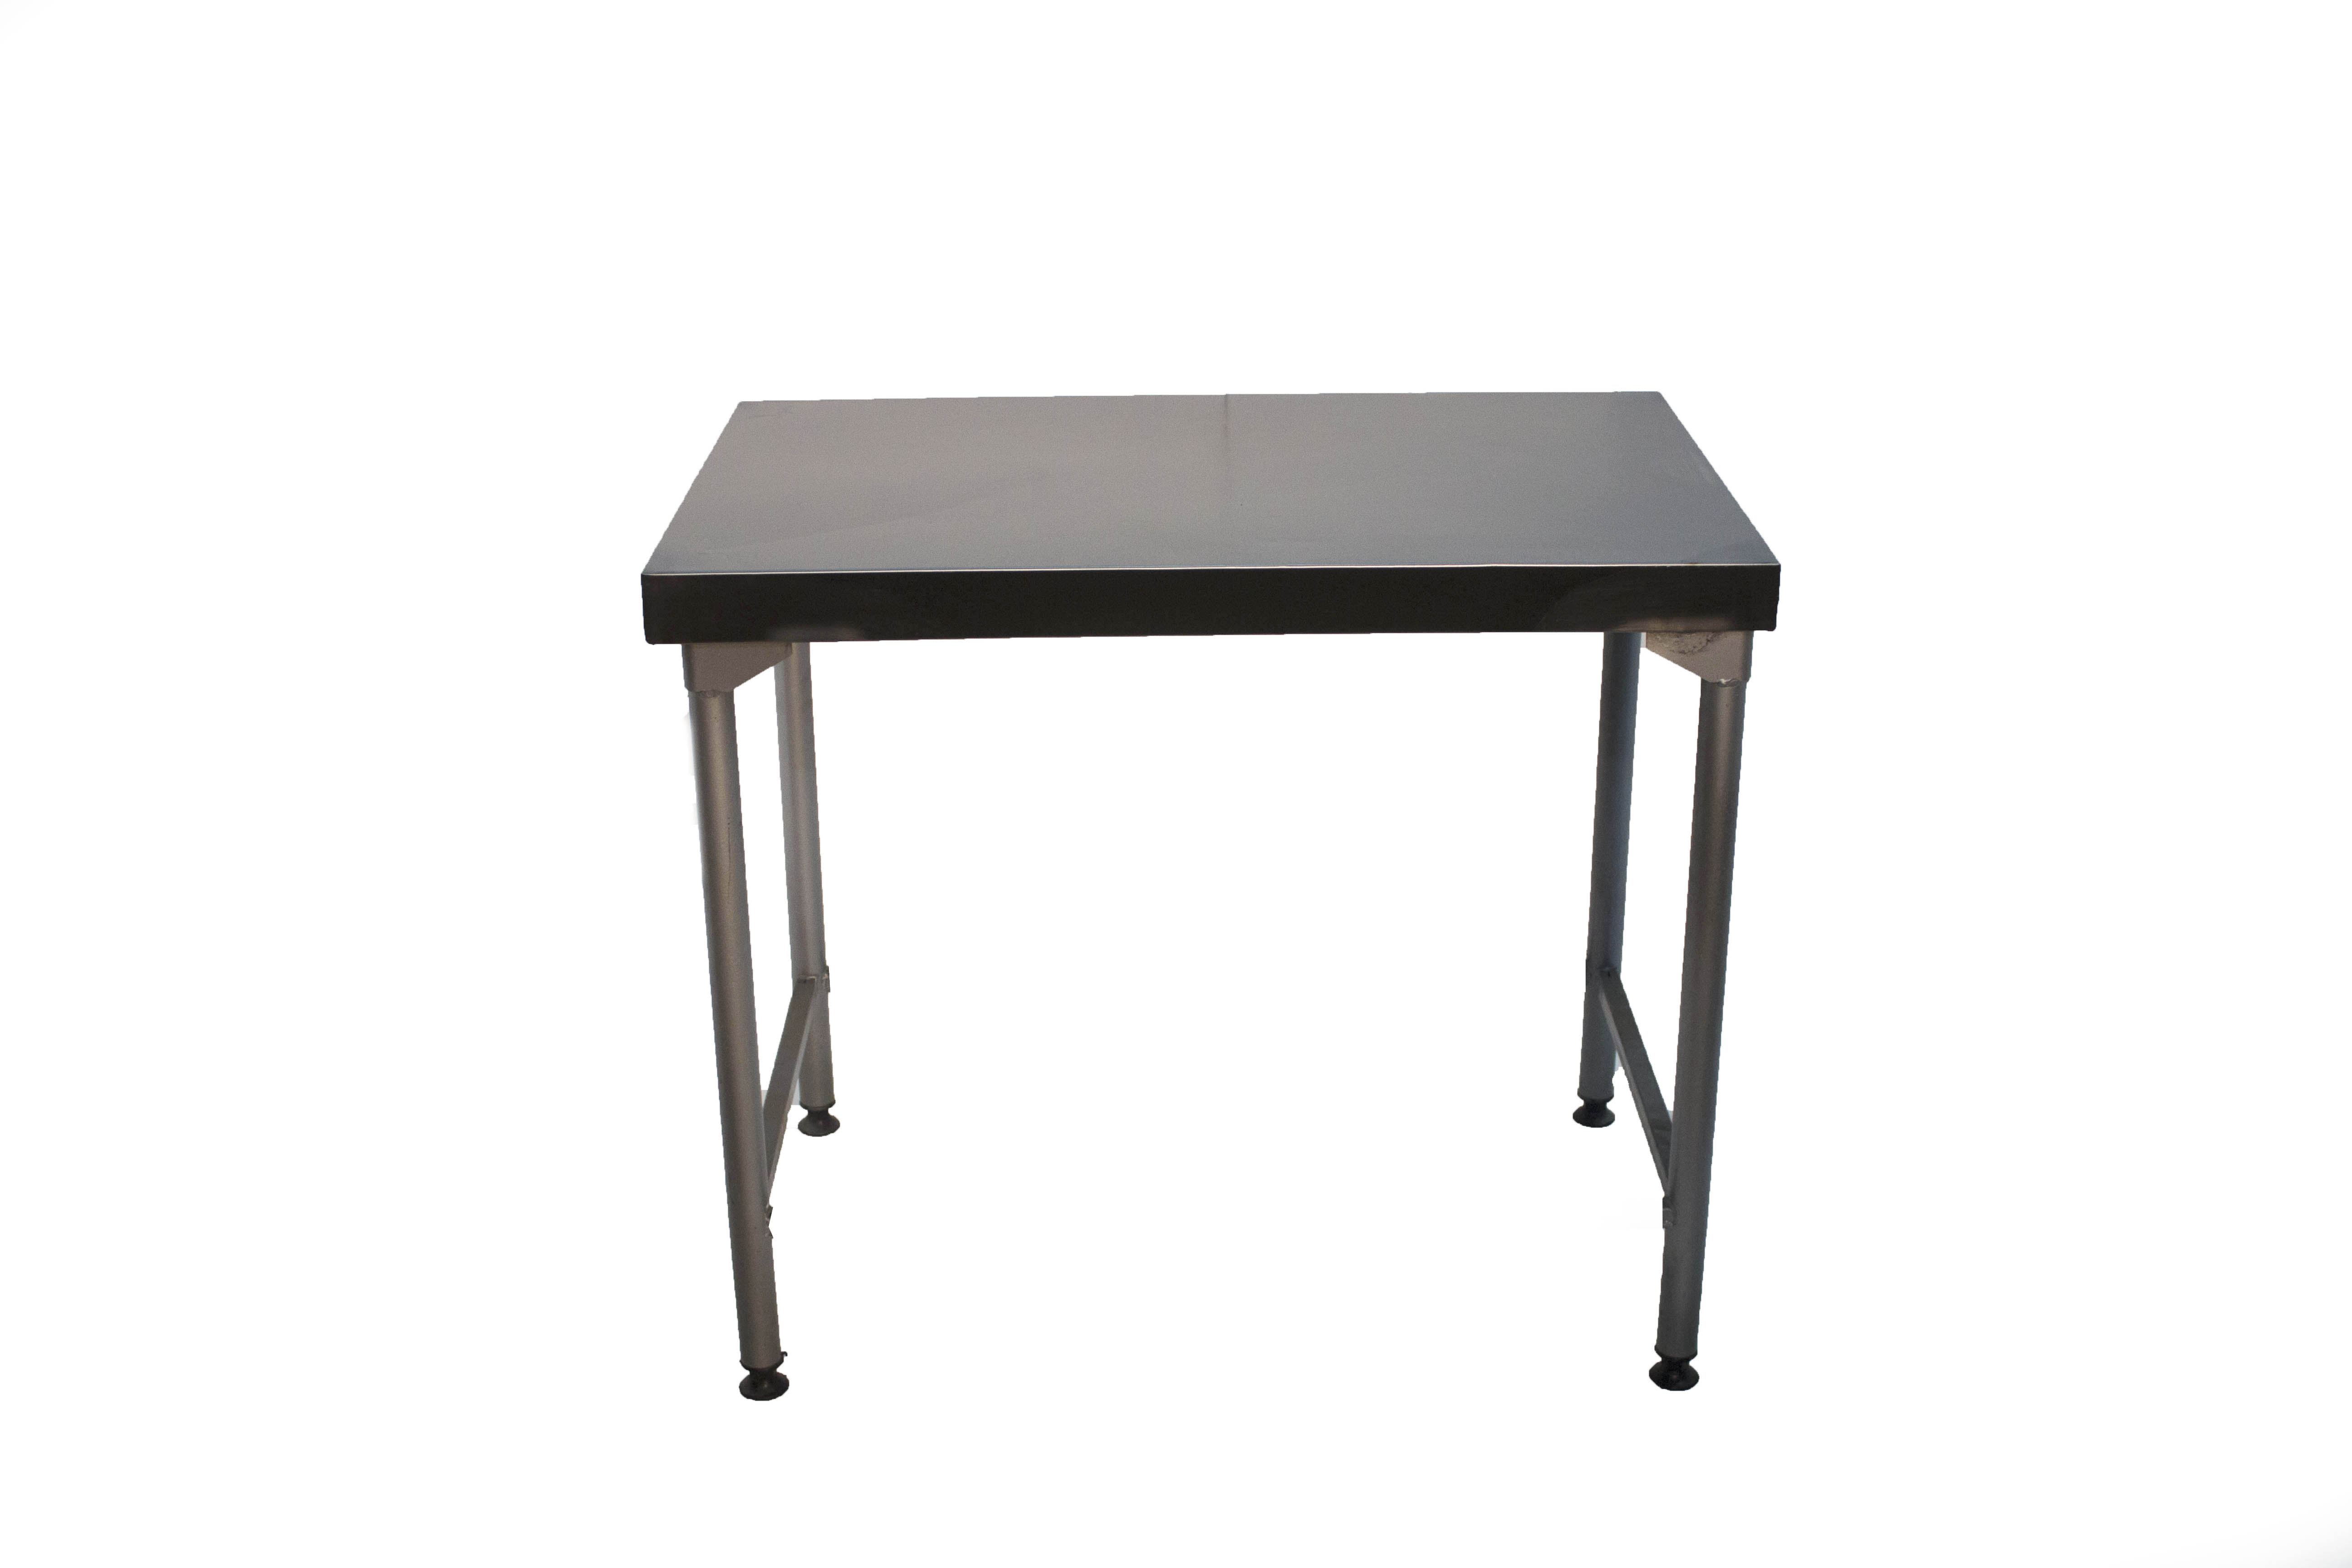 1100mm Stainless Steel Table